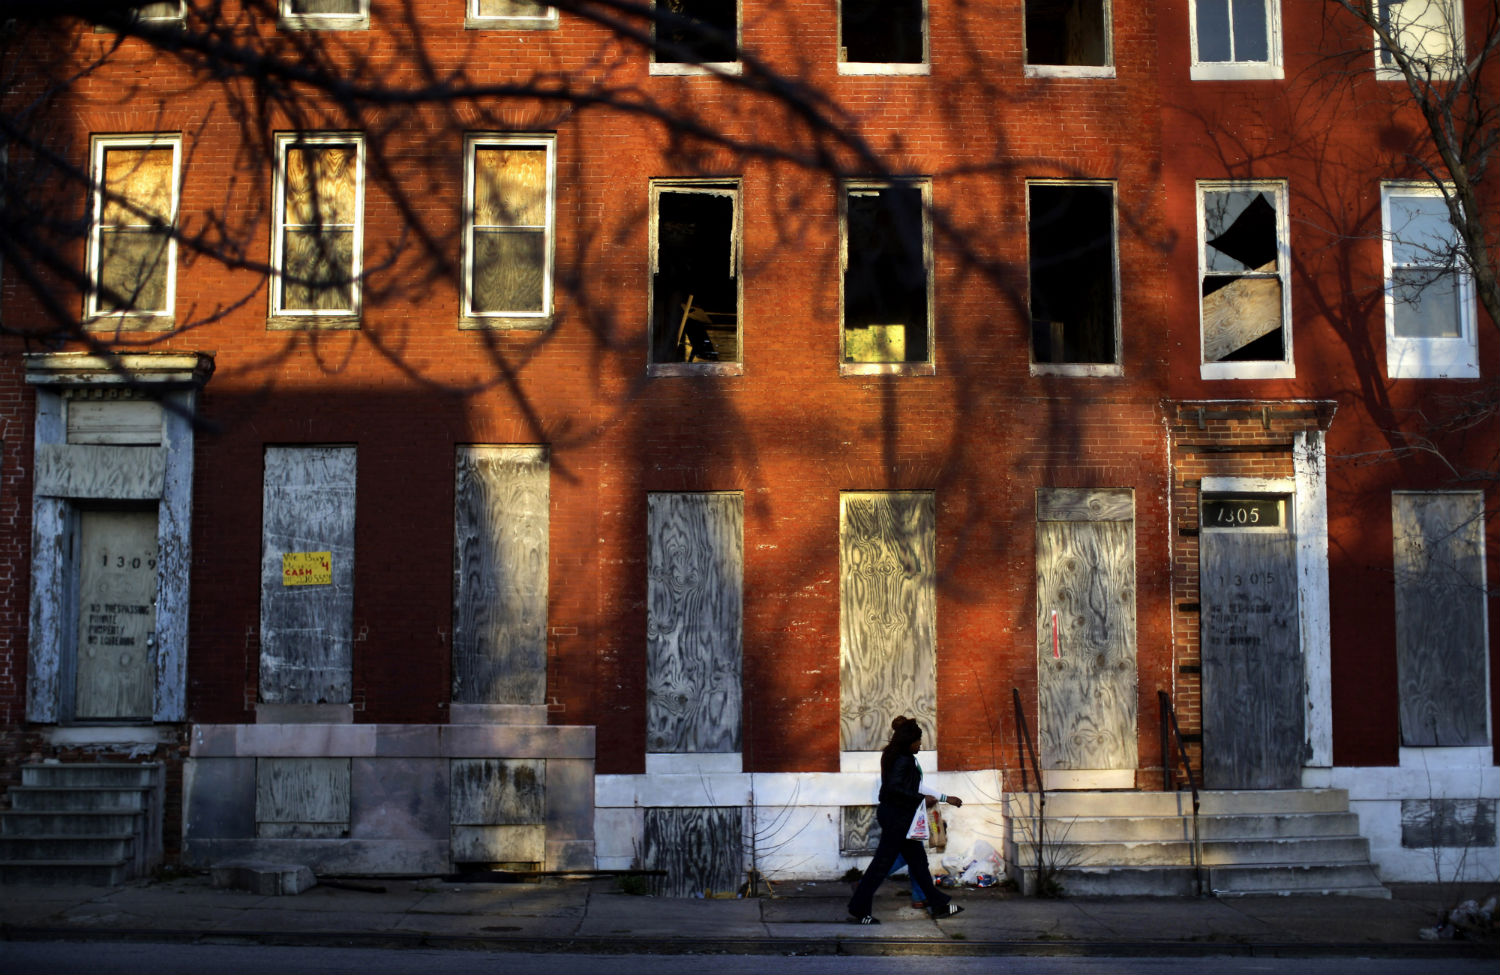 A woman walks past abandoned row houses in Baltimore, Maryland.